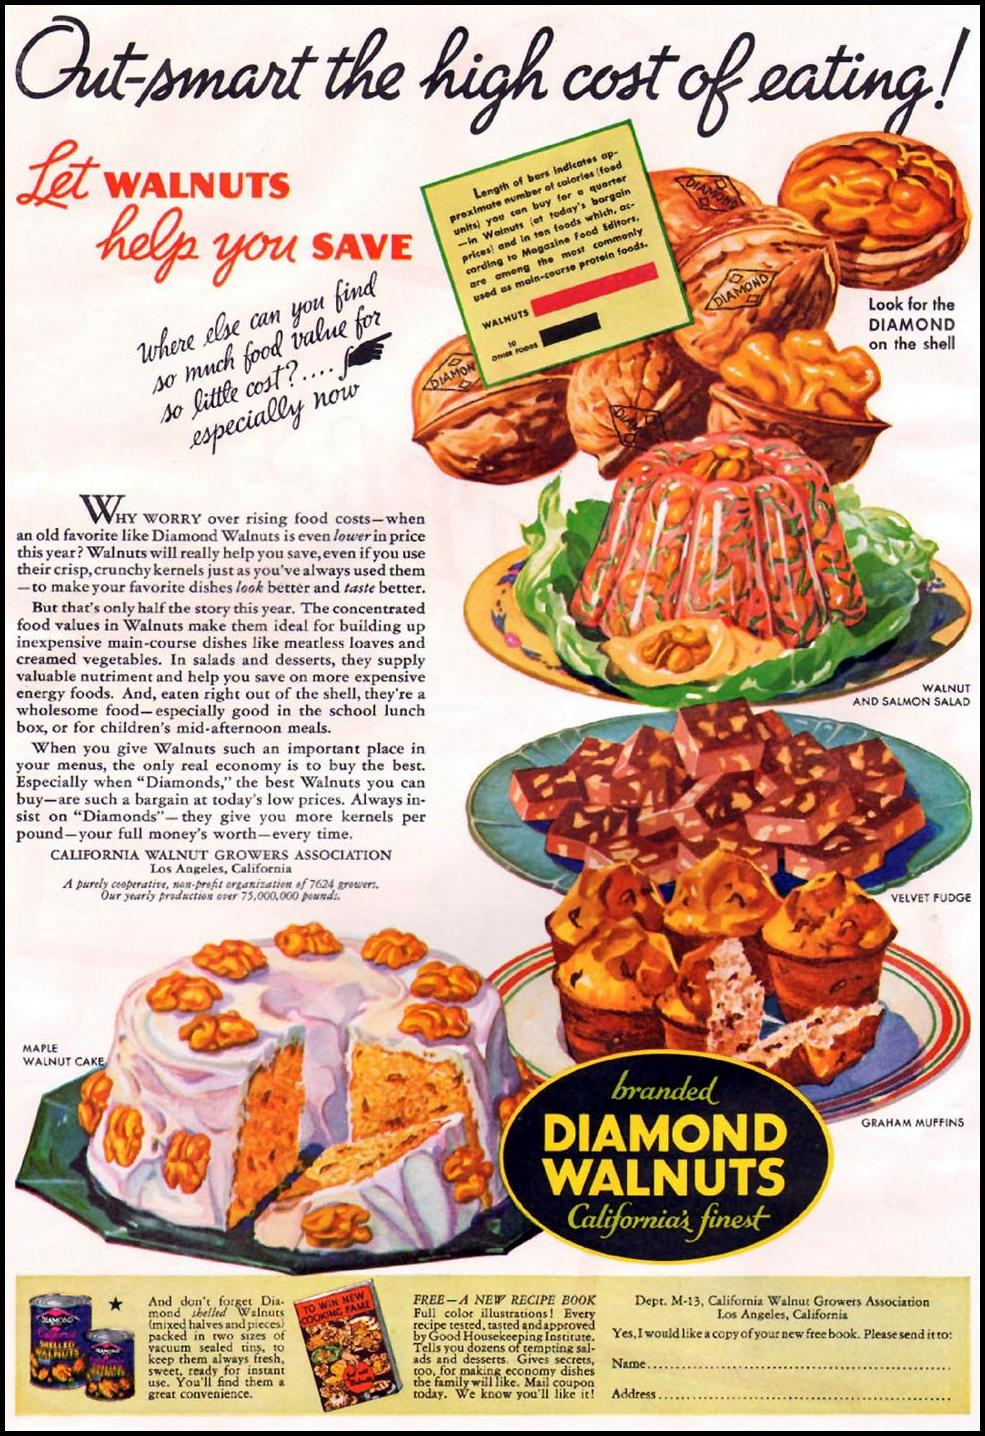 DIAMOND BRAND WALNUTS